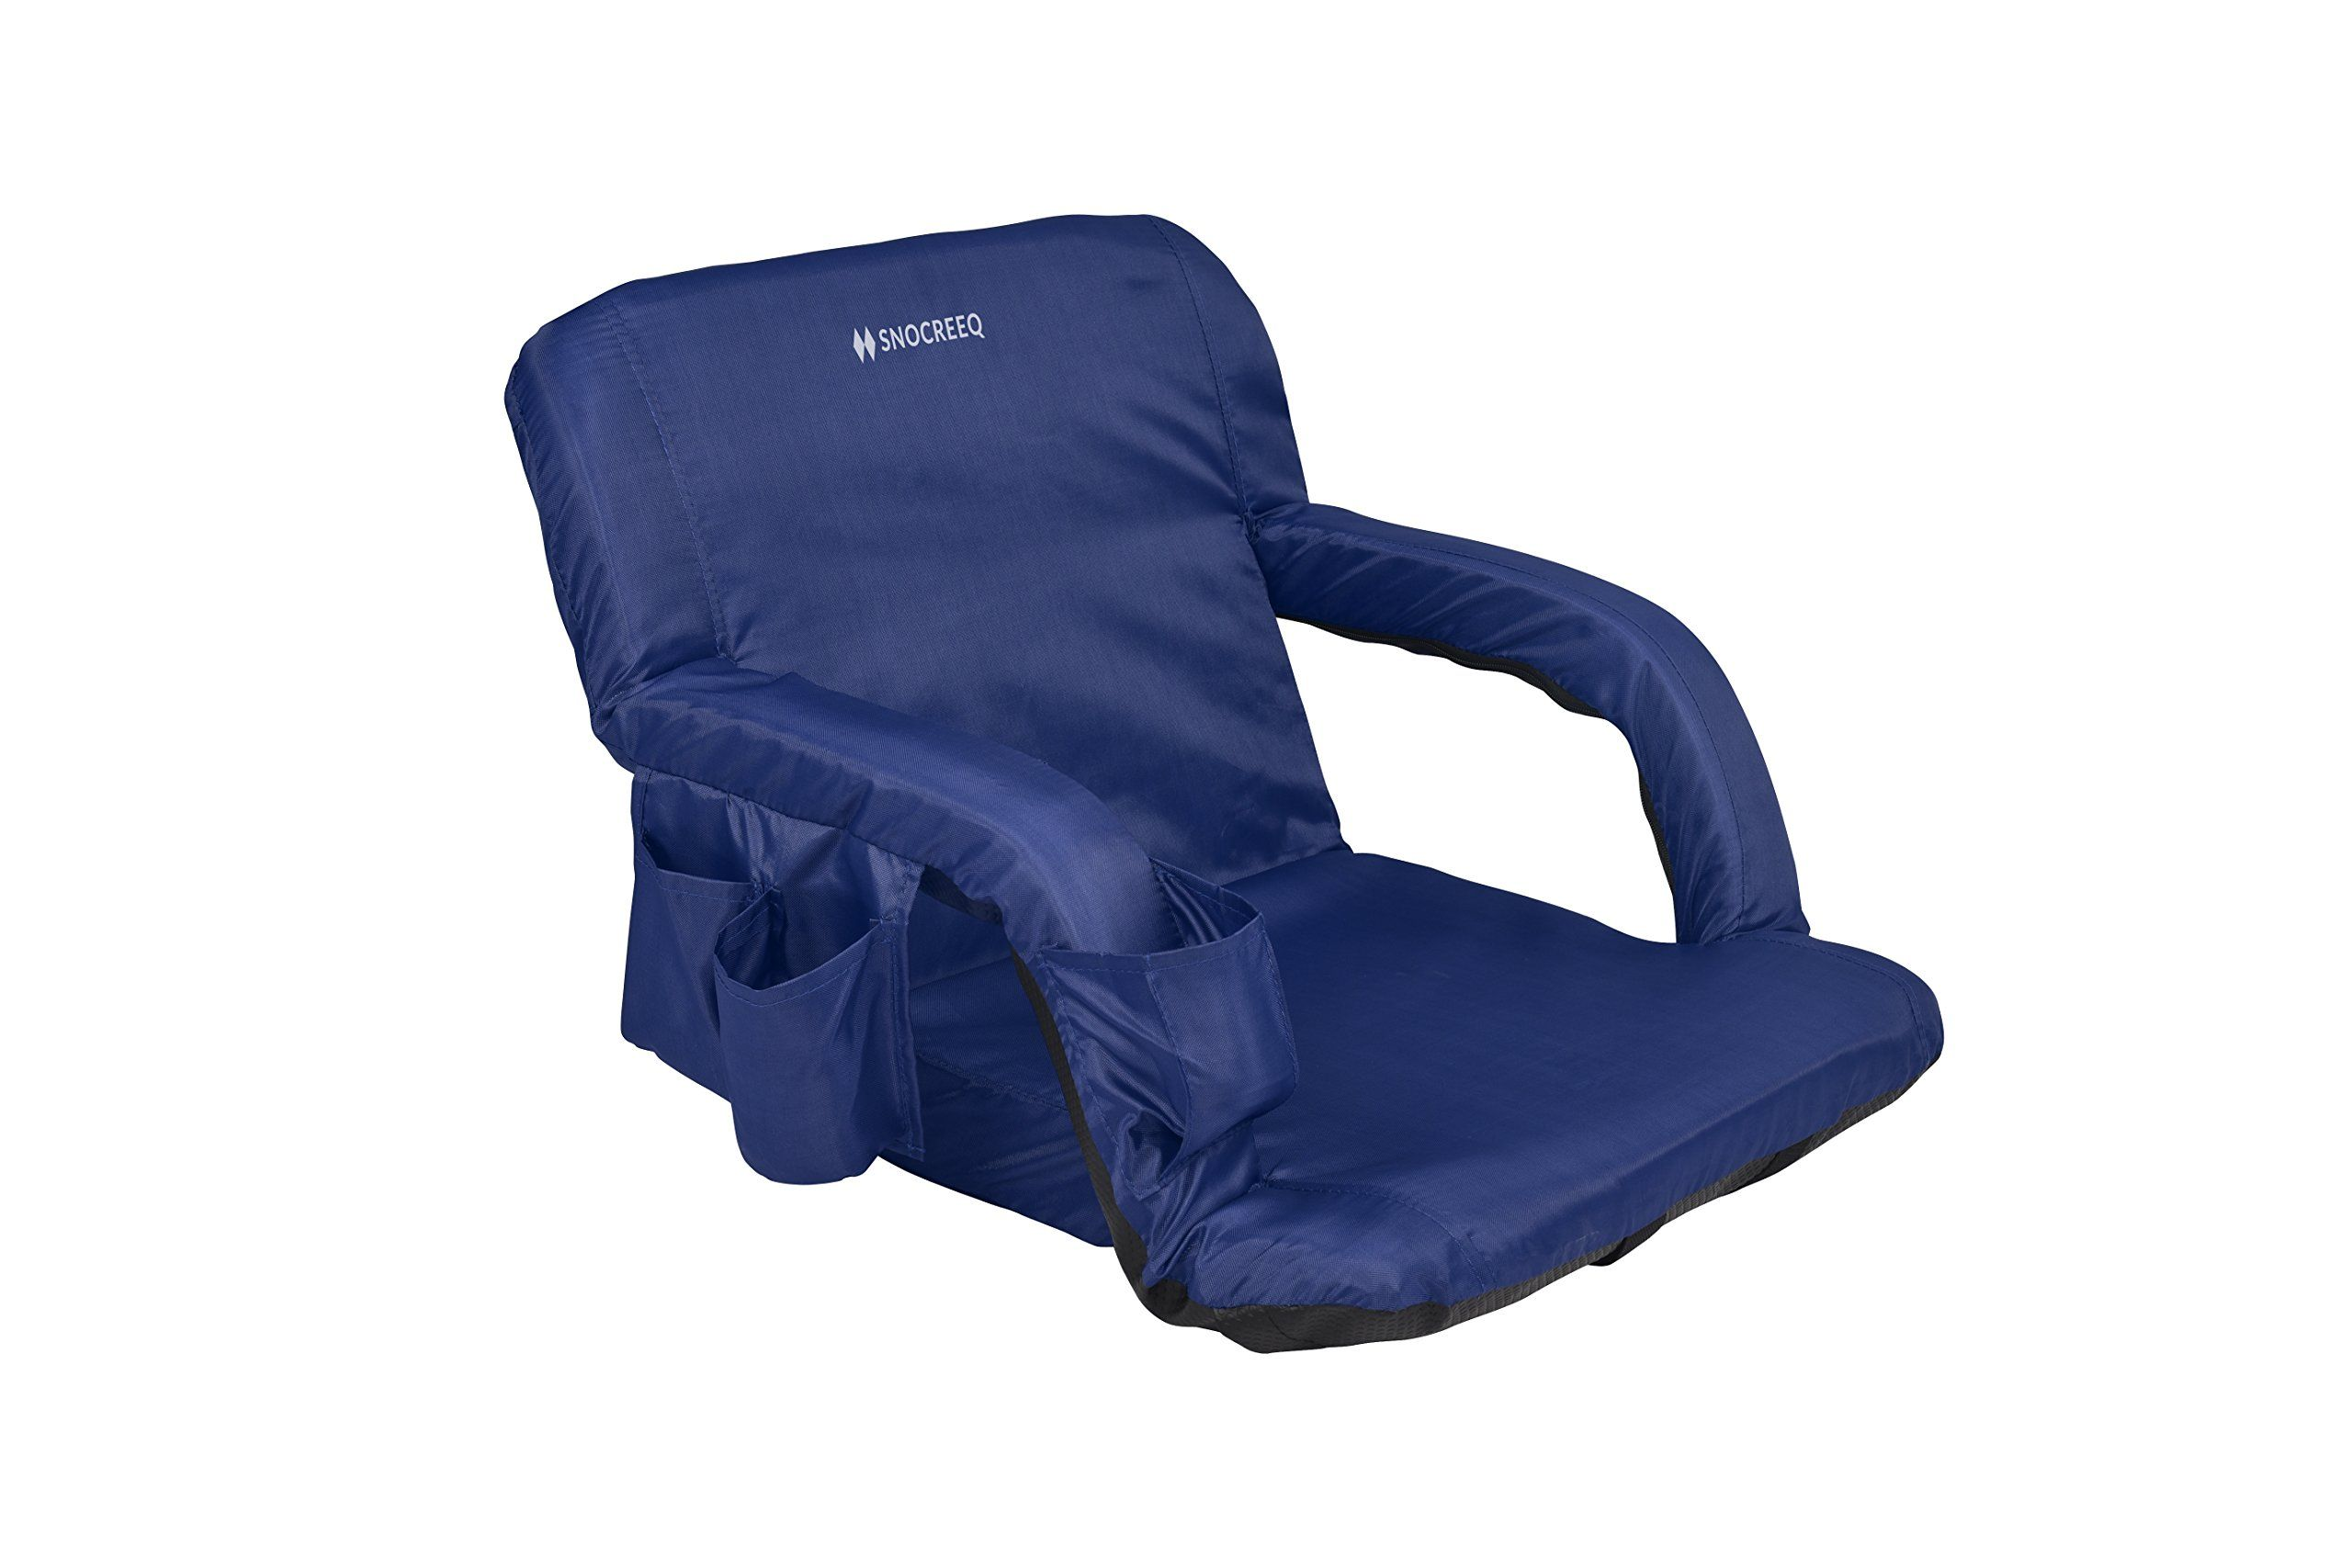 Snocreeq Portable Extra Wide Reclining Stadium seat